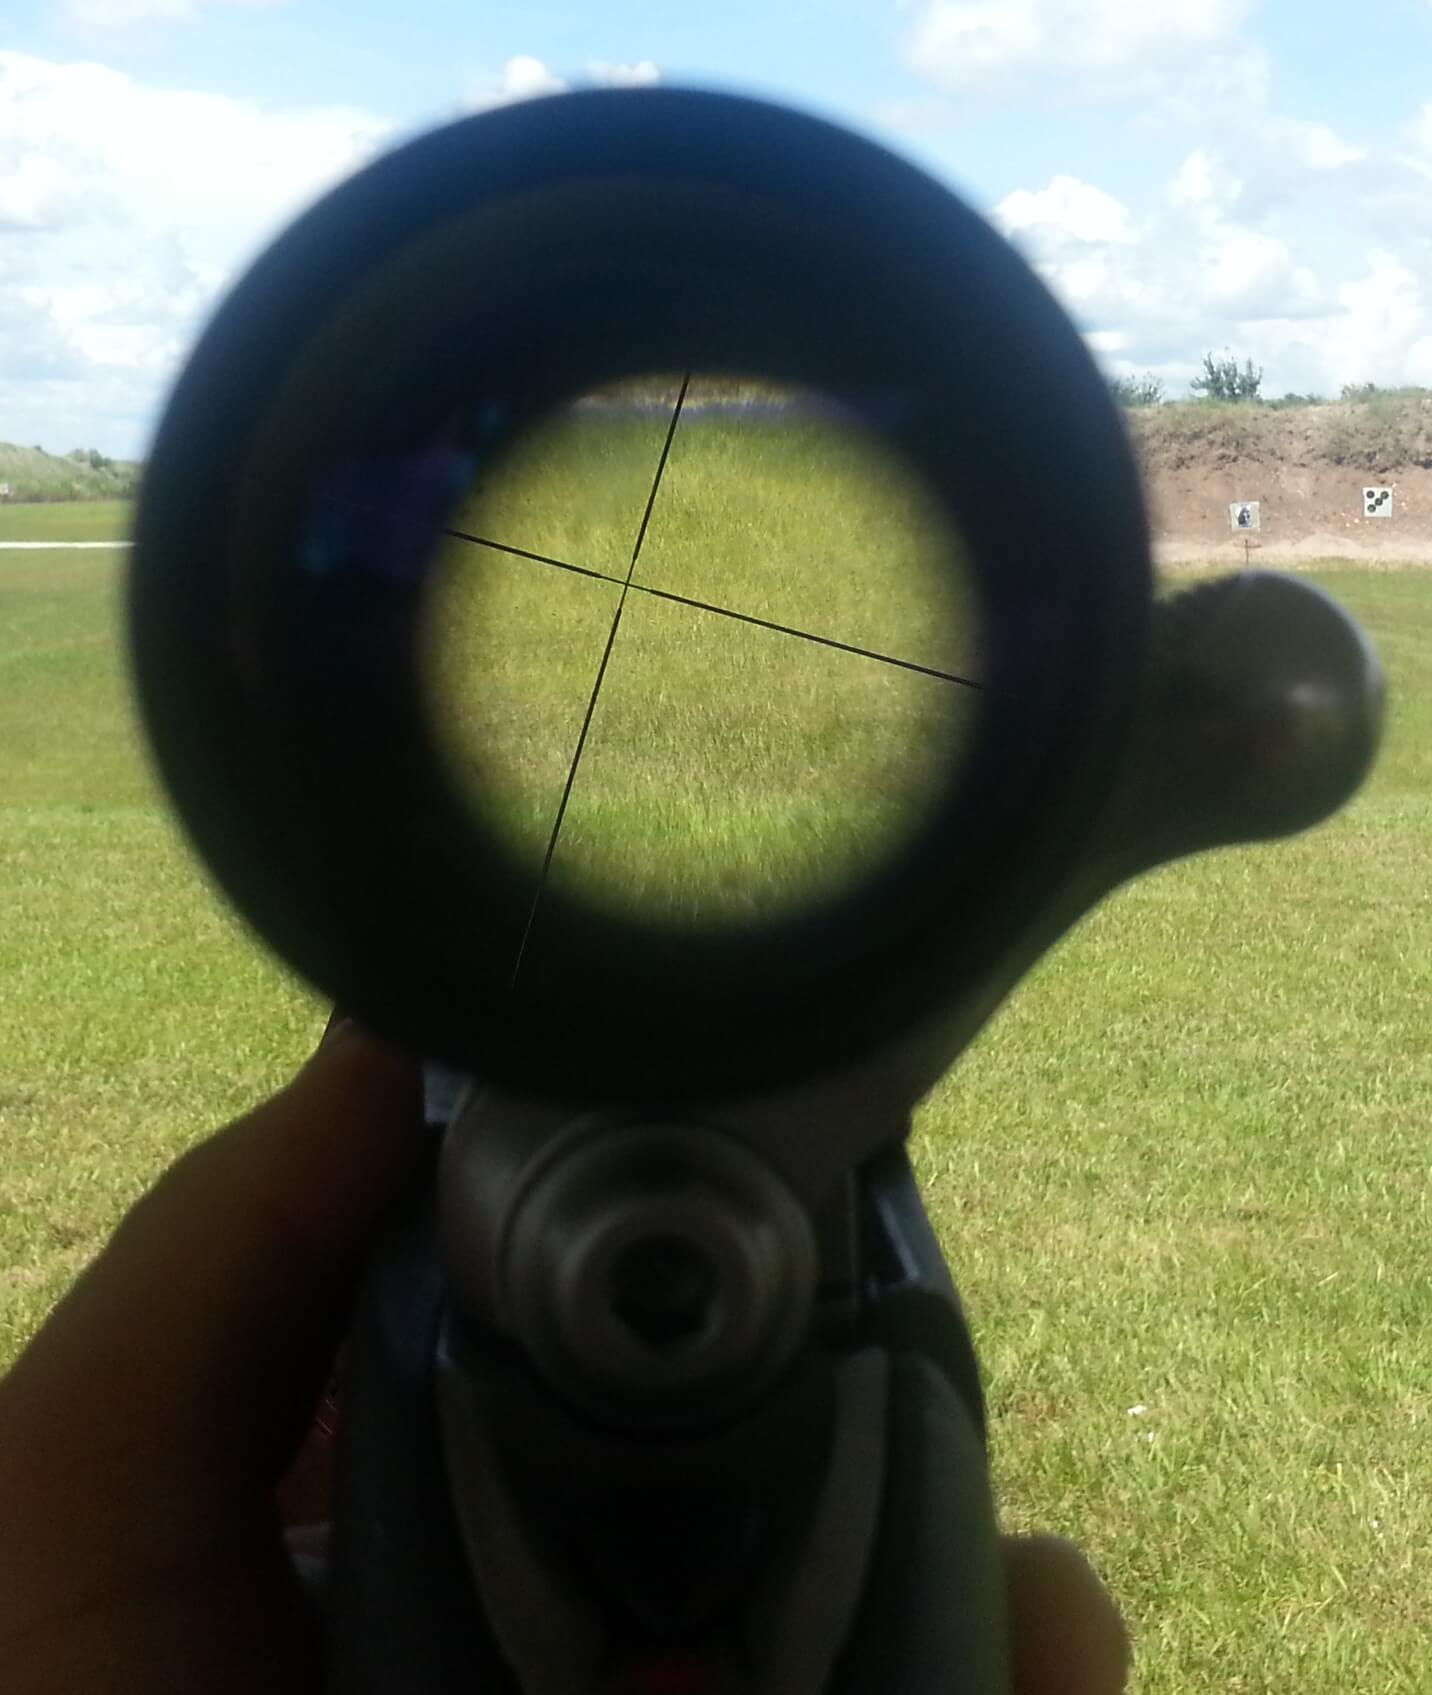 Broken scope.